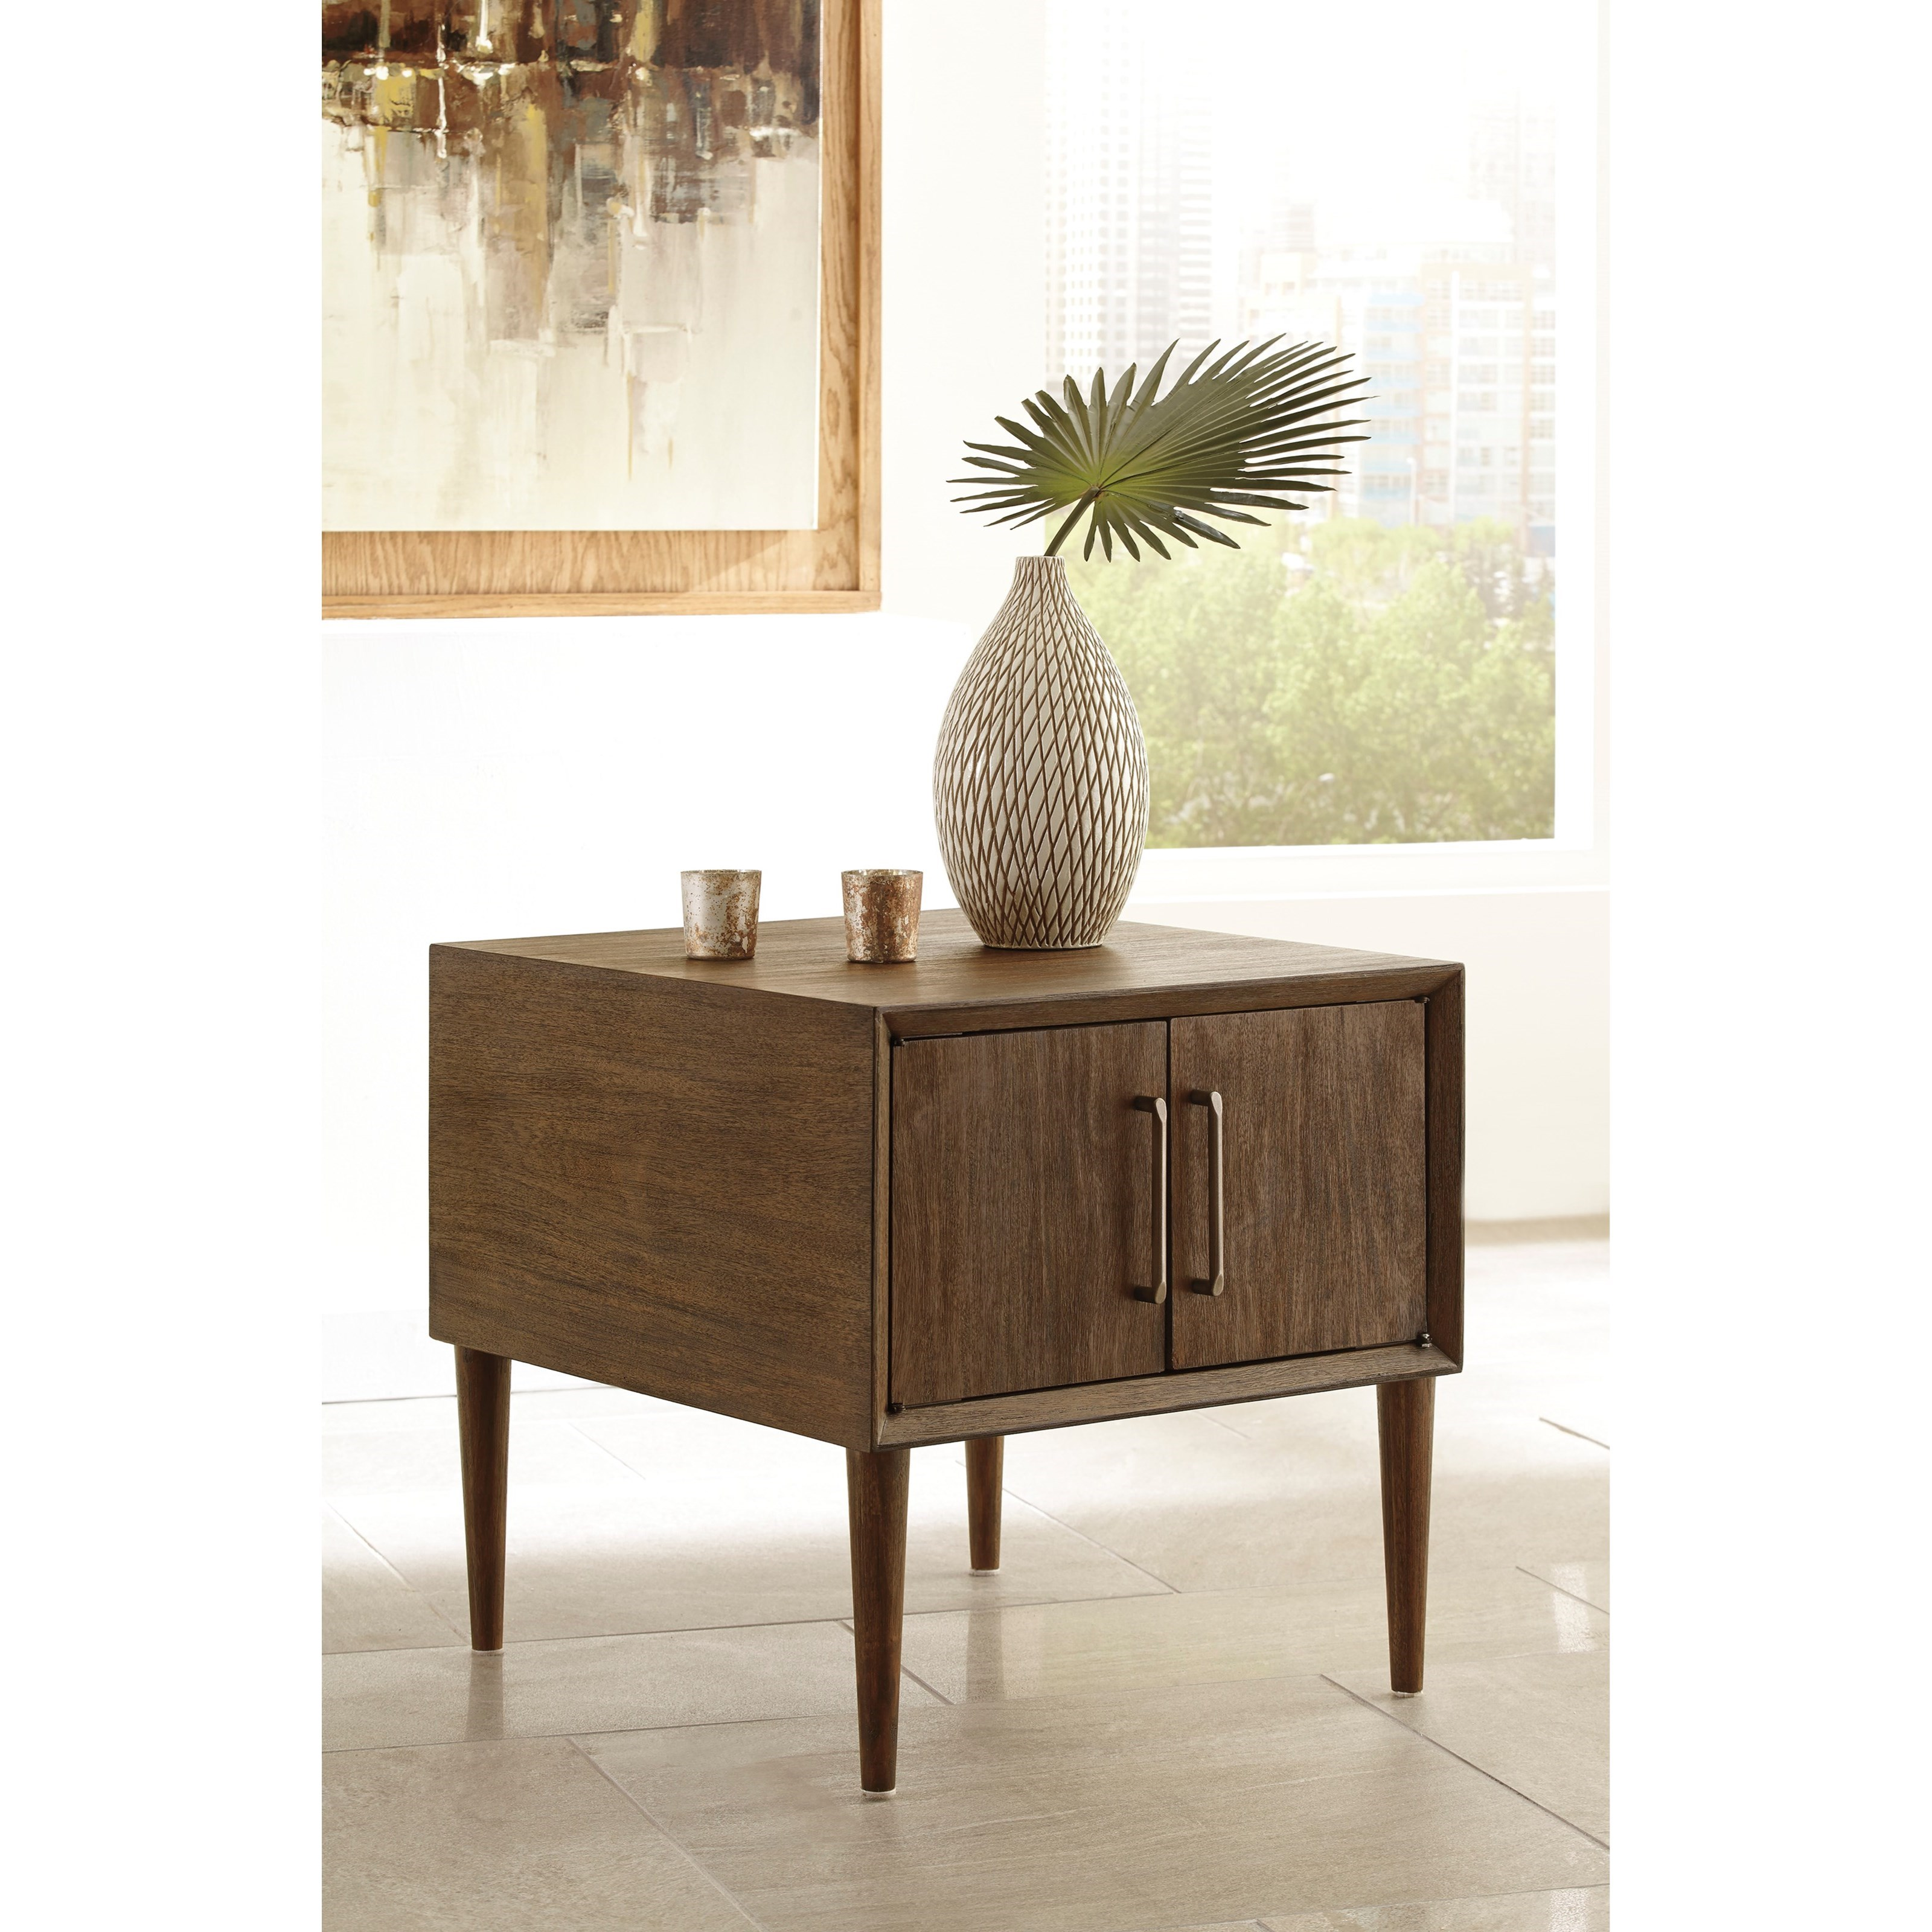 Pick Up End Table Lamps For Living Room Kmart: Signature Design By Ashley Kisper T802-2 Mid-Century